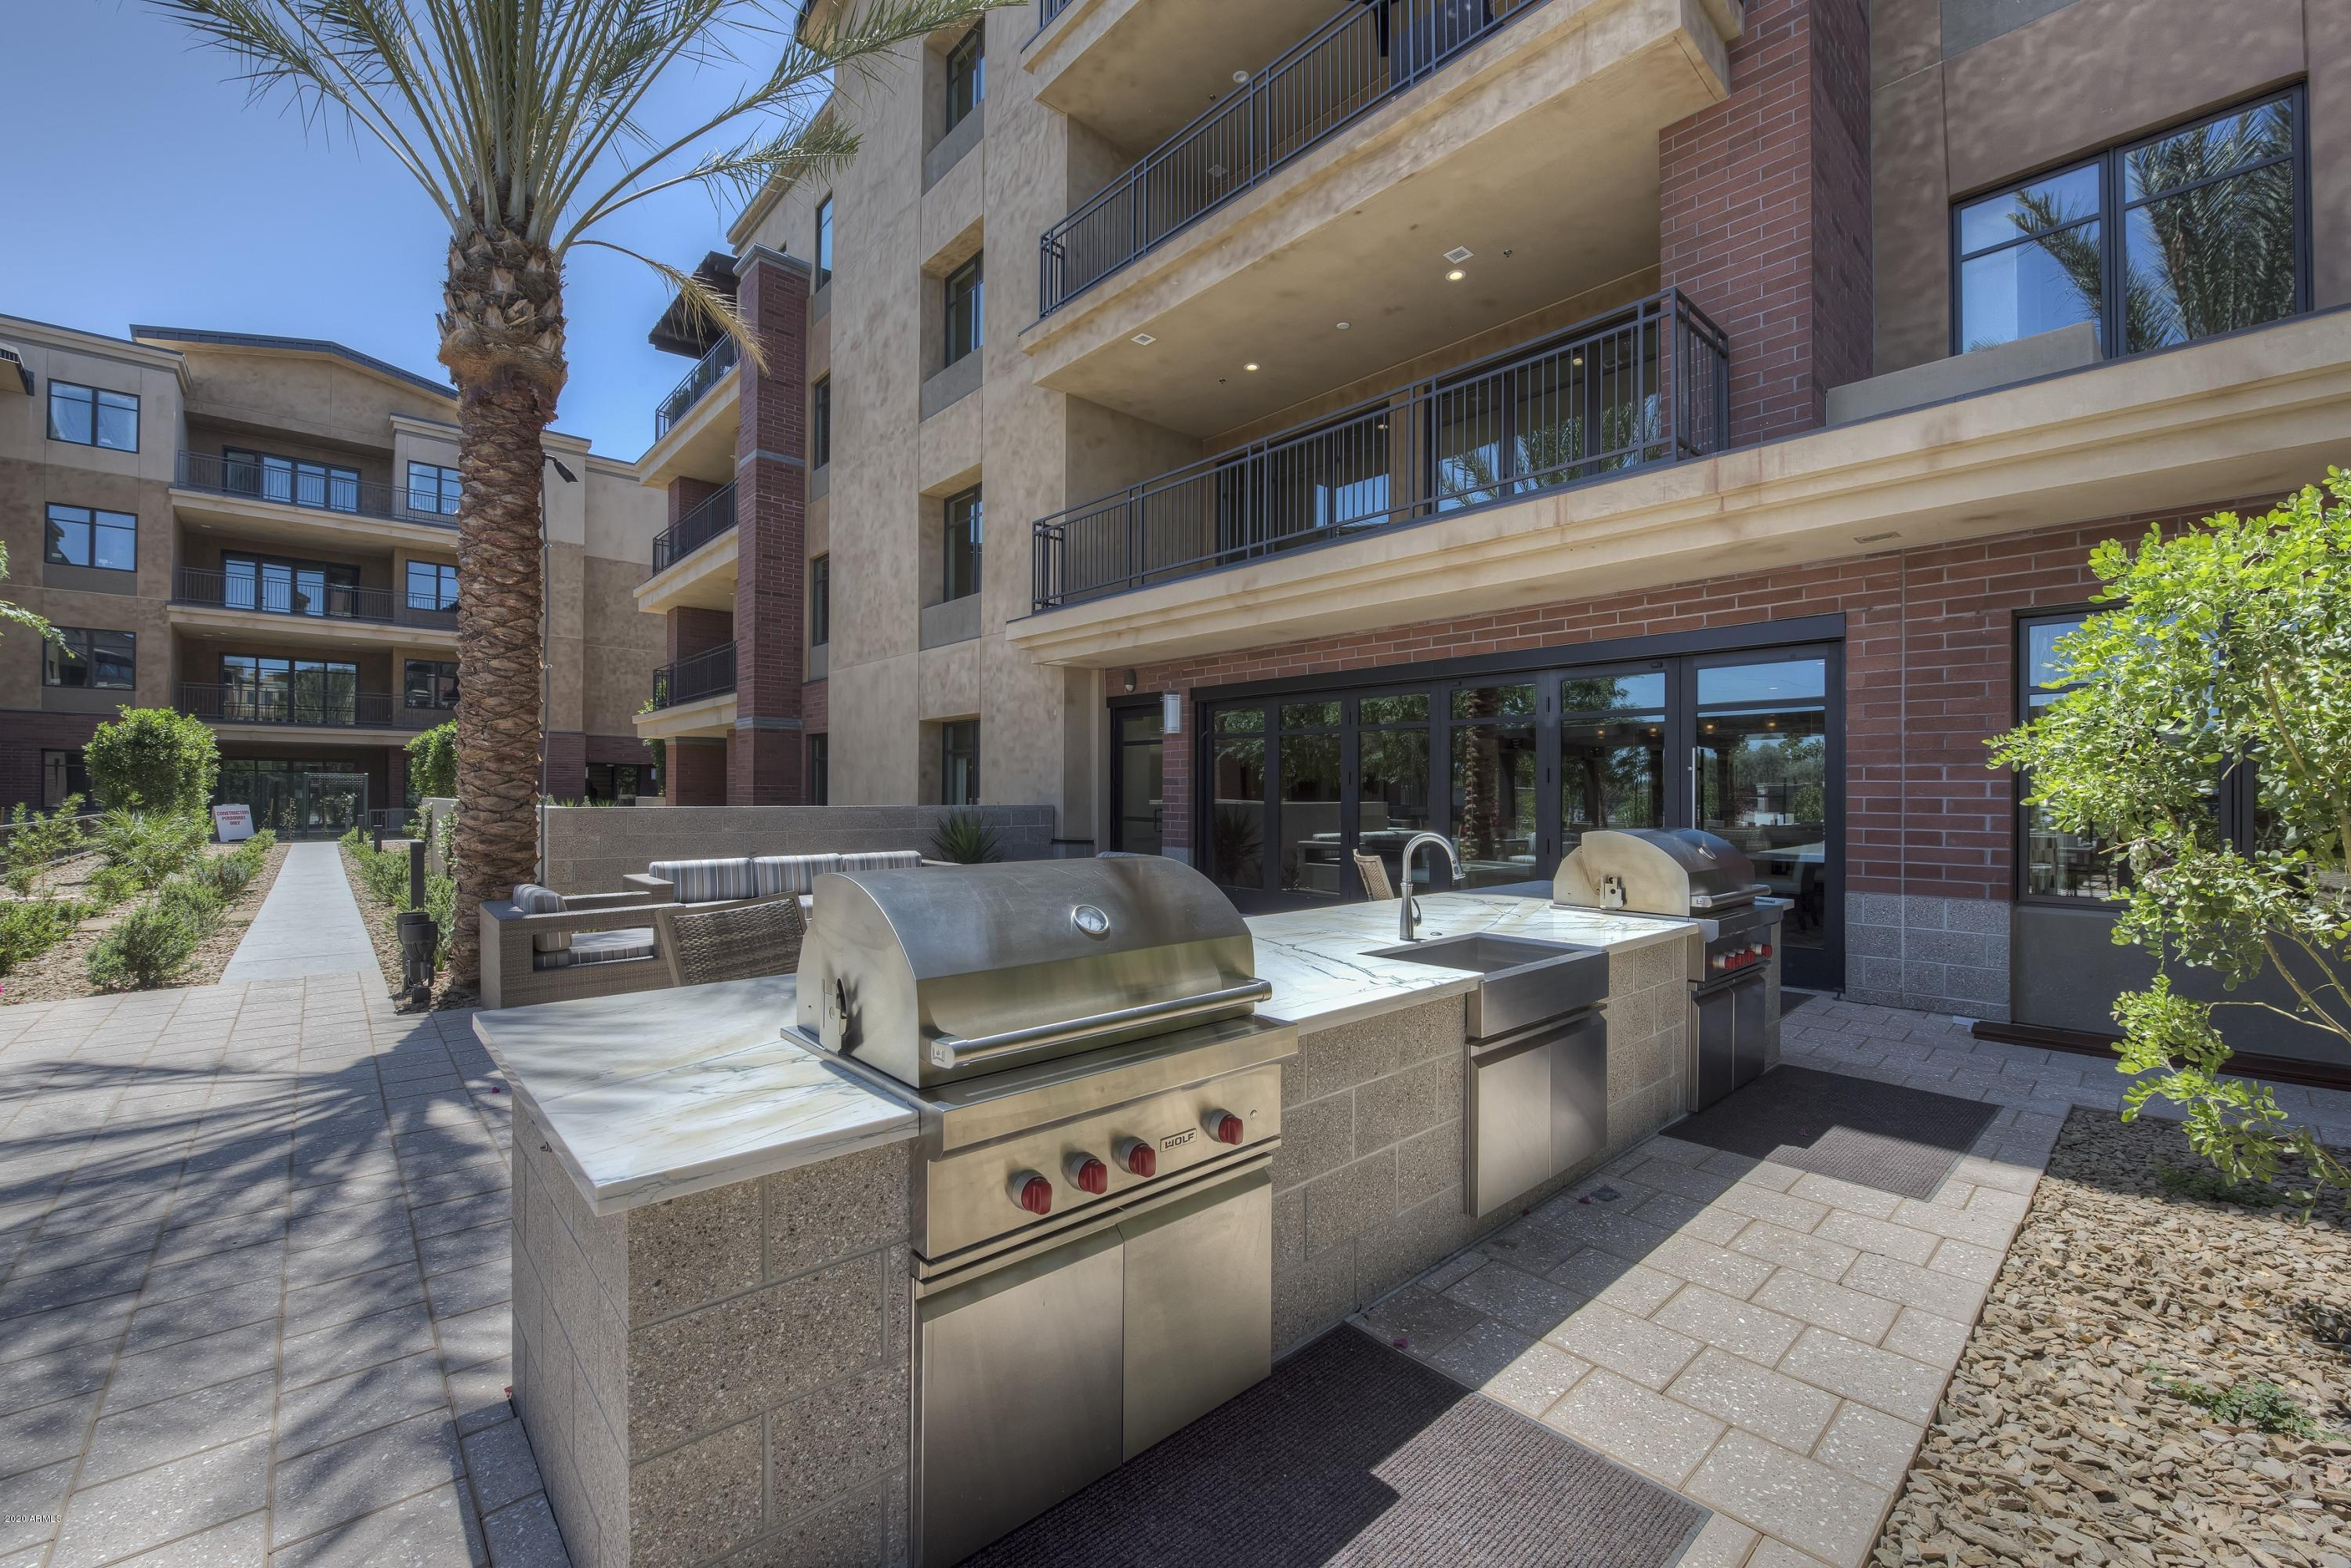 MLS 6088268 6166 N SCOTTSDALE Road Unit C1002, Paradise Valley, AZ 85253 Paradise Valley AZ Condo or Townhome